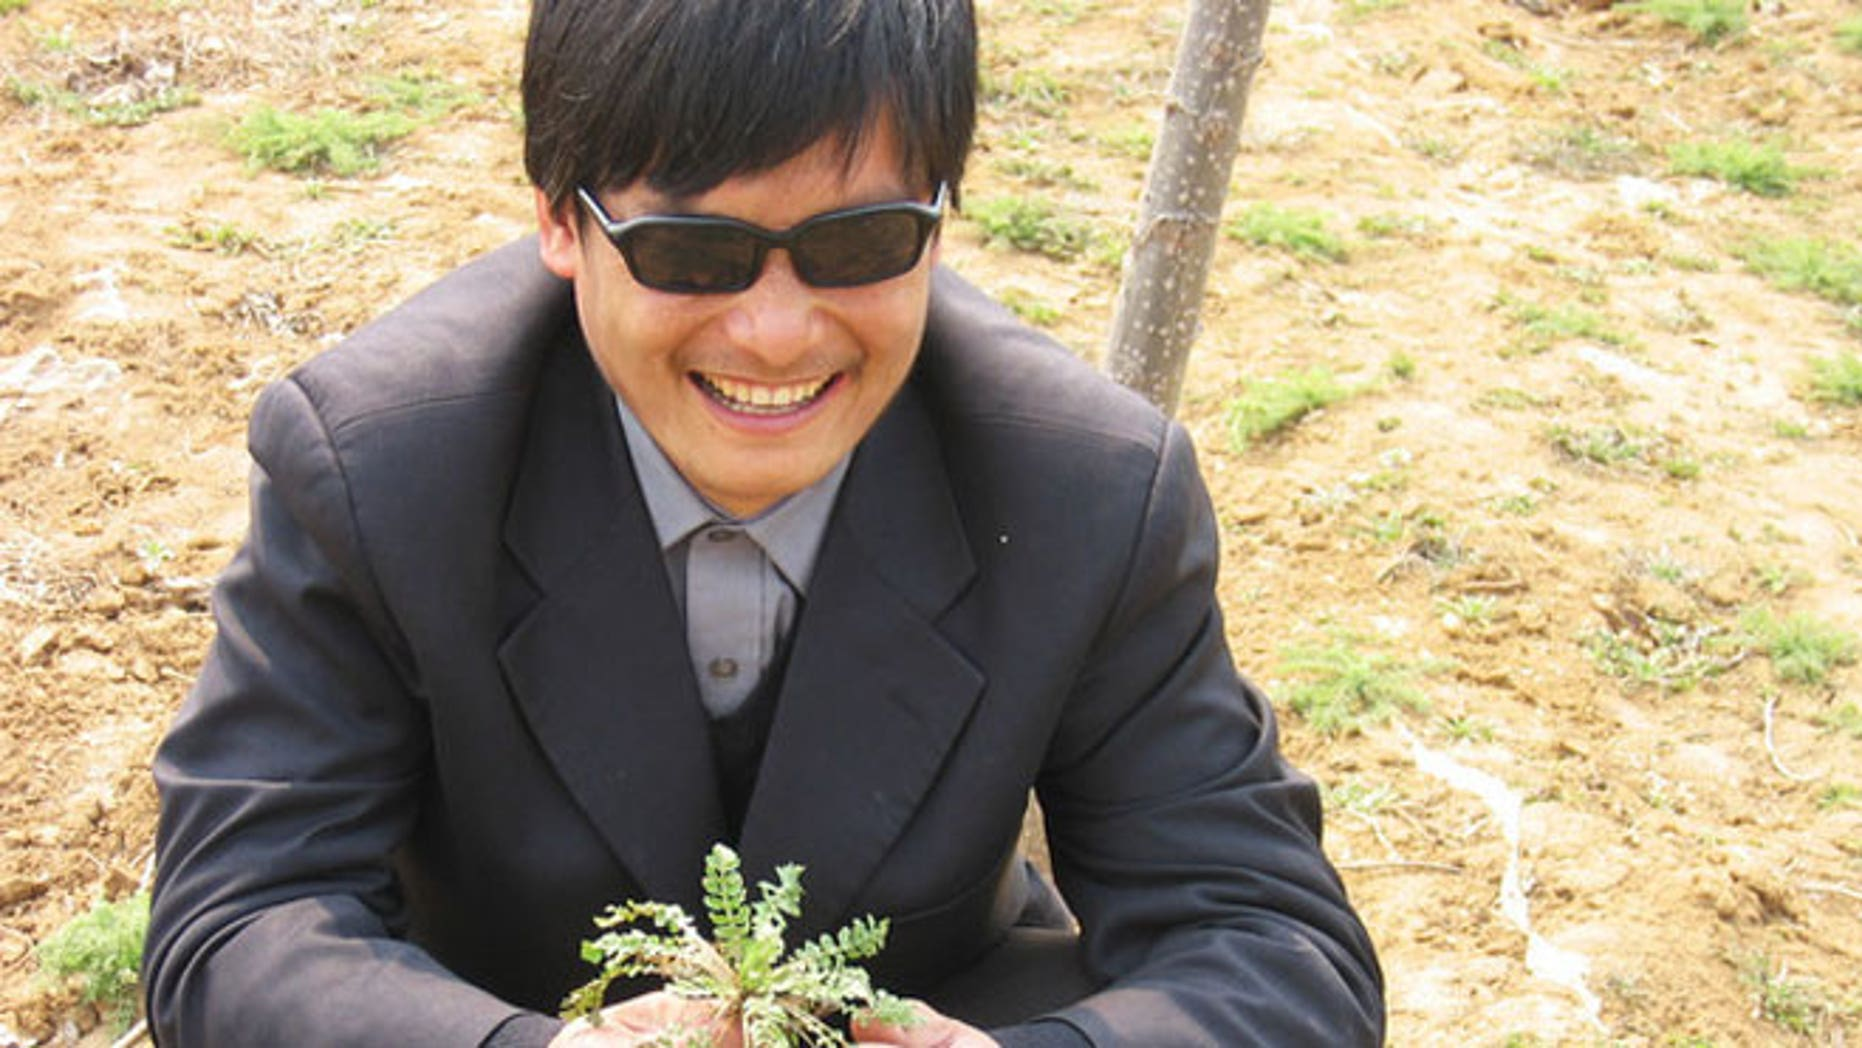 This undated photo provided by the China Aid Association shows blind Chinese legal activist Chen Guangchen in Shandong province, China. Chen, a well-known dissident who angered authorities in rural China by exposing forced abortions, made a surprise escape from house arrest on April 22, 2012, into what activists say is the protection of U.S. diplomats in Beijing, posing a delicate diplomatic crisis for both governments.